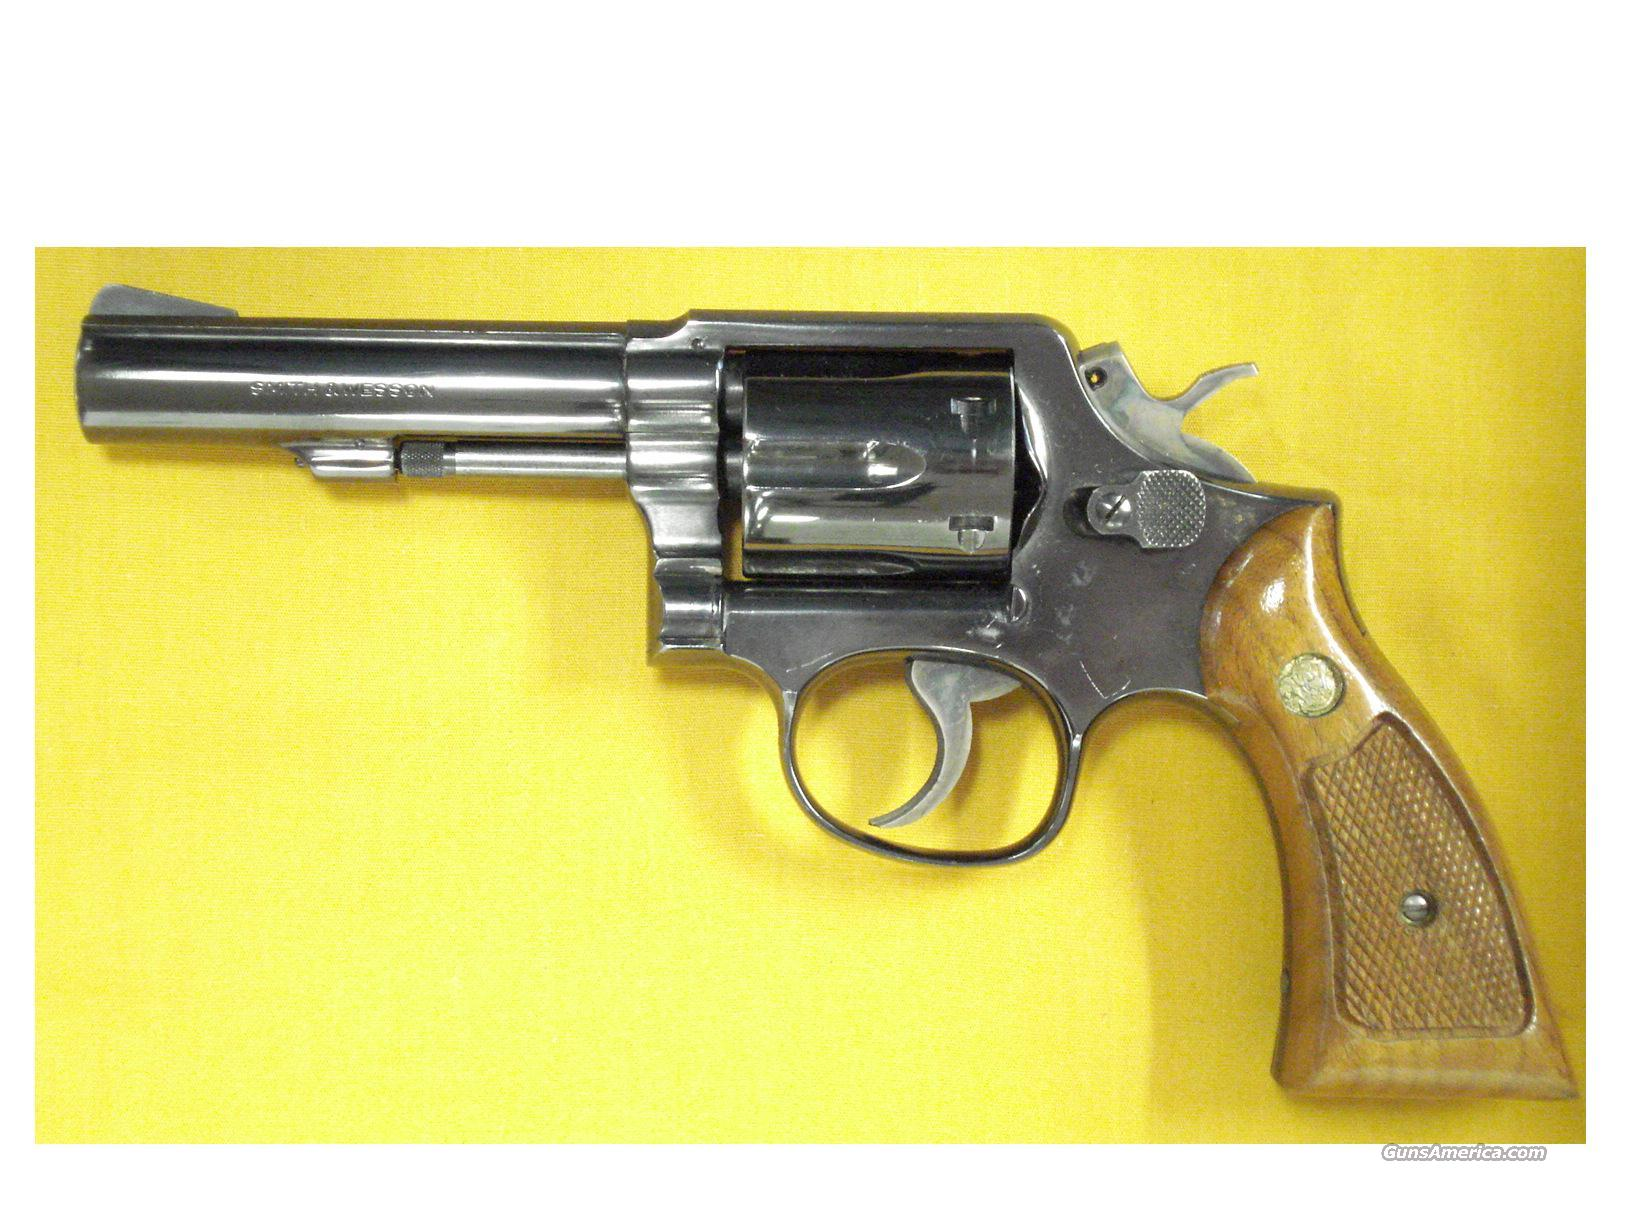 "S&W 13-1 .357 4"" PINNED BARREL  Guns > Pistols > Smith & Wesson Revolvers > Full Frame Revolver"